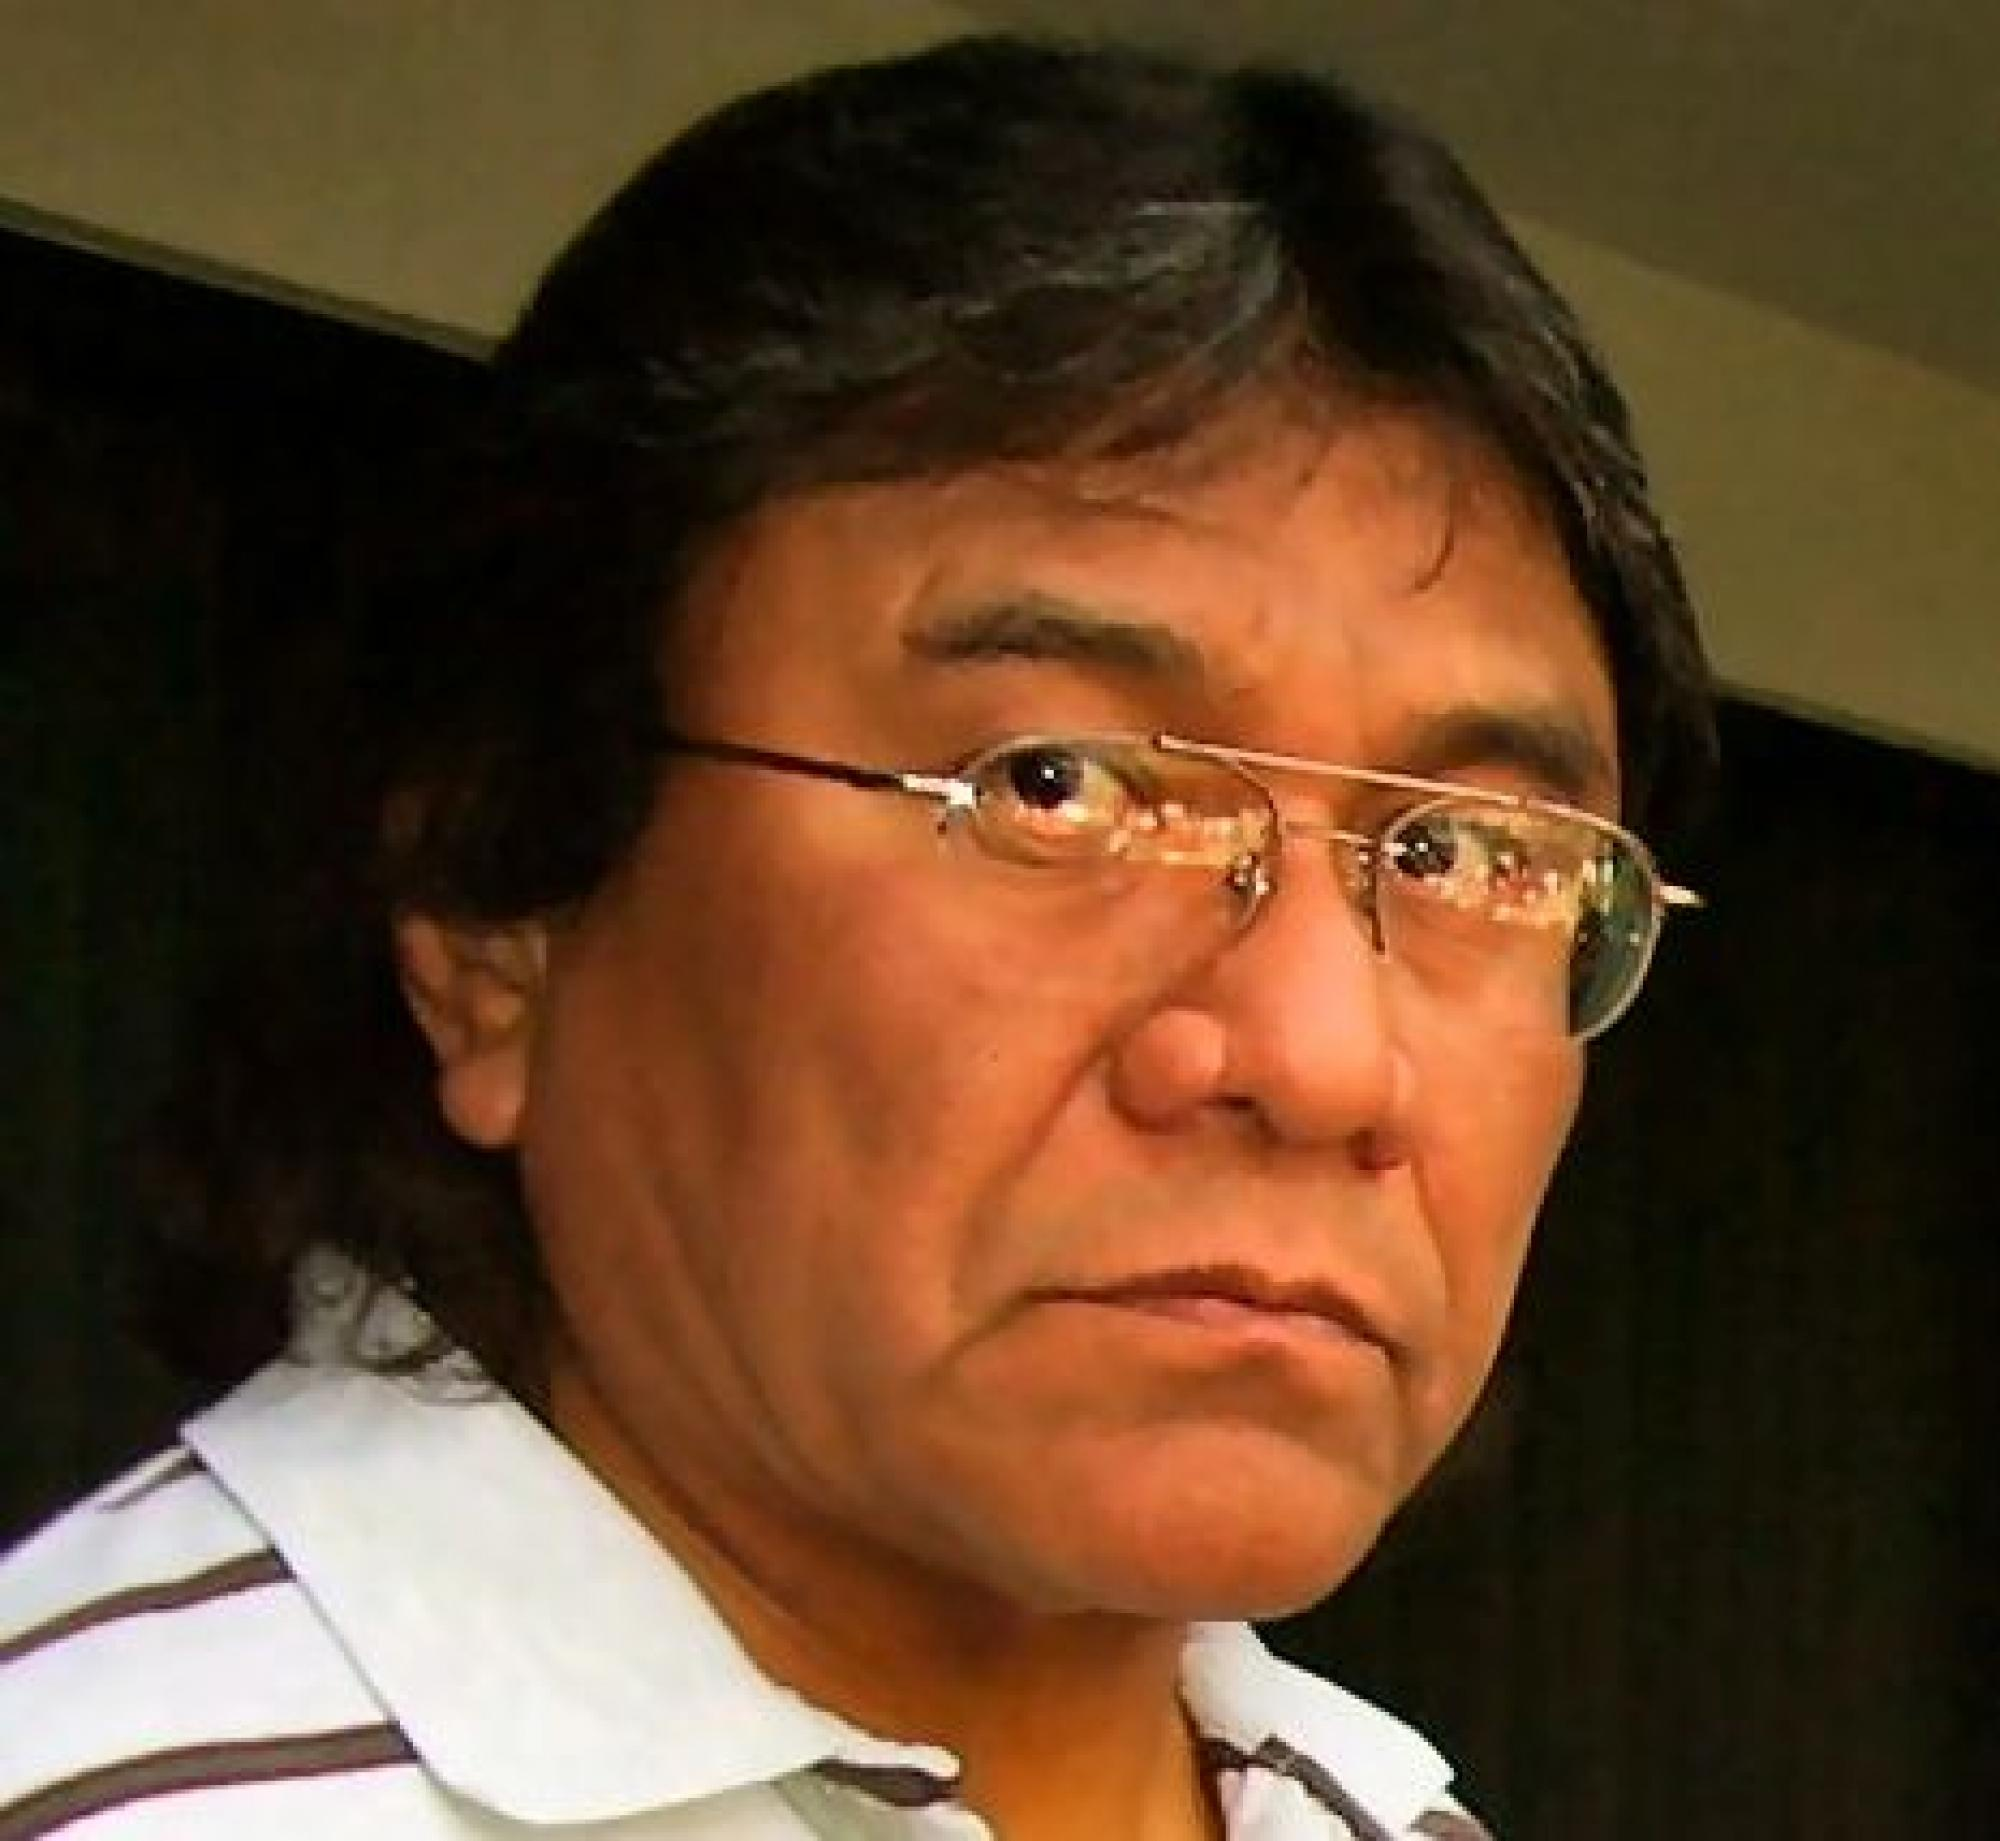 Raymond D. Austin is member of the Arizona and Utah state bars and the Navajo Nation Bar Association. He served as a Navajo Nation Supreme Court justice, serving with the court from 1985 to 2001.